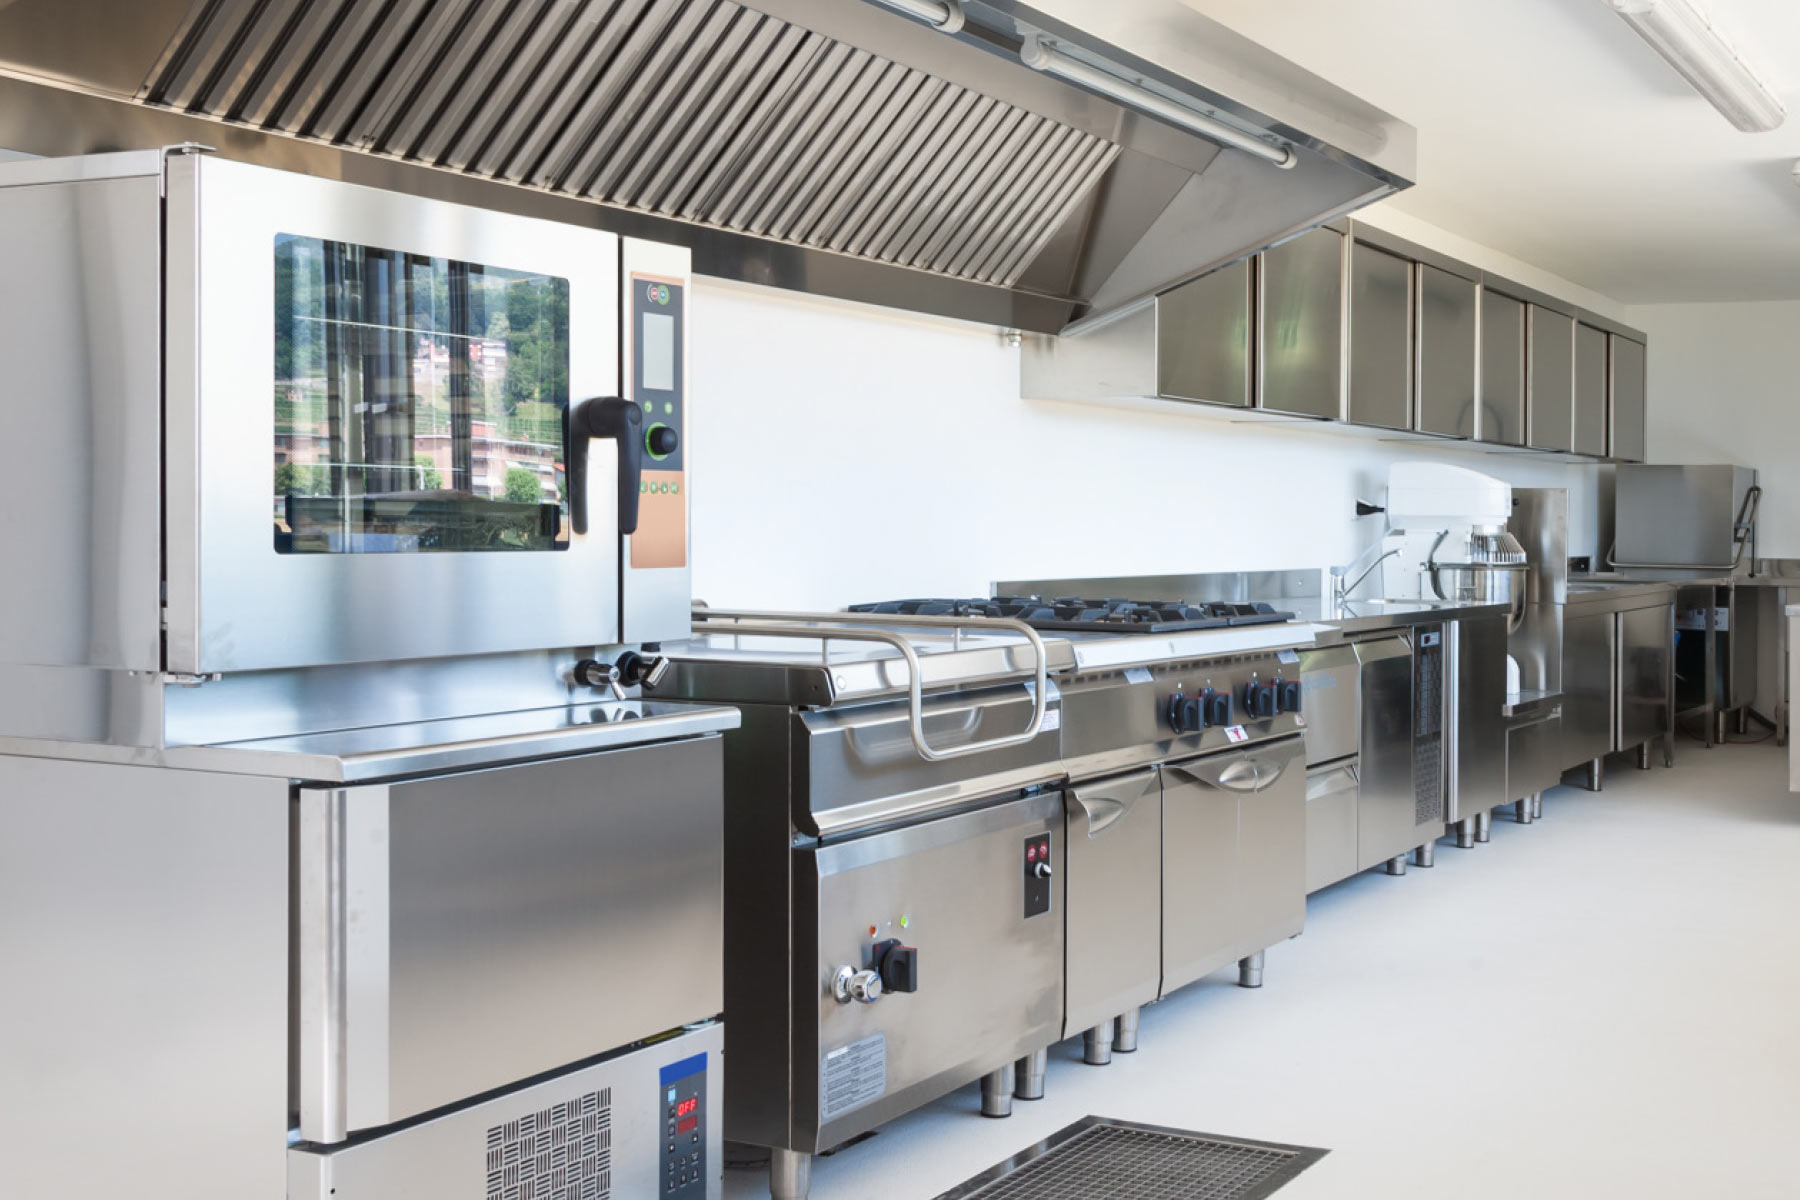 Stainless Steel spotless kitchen